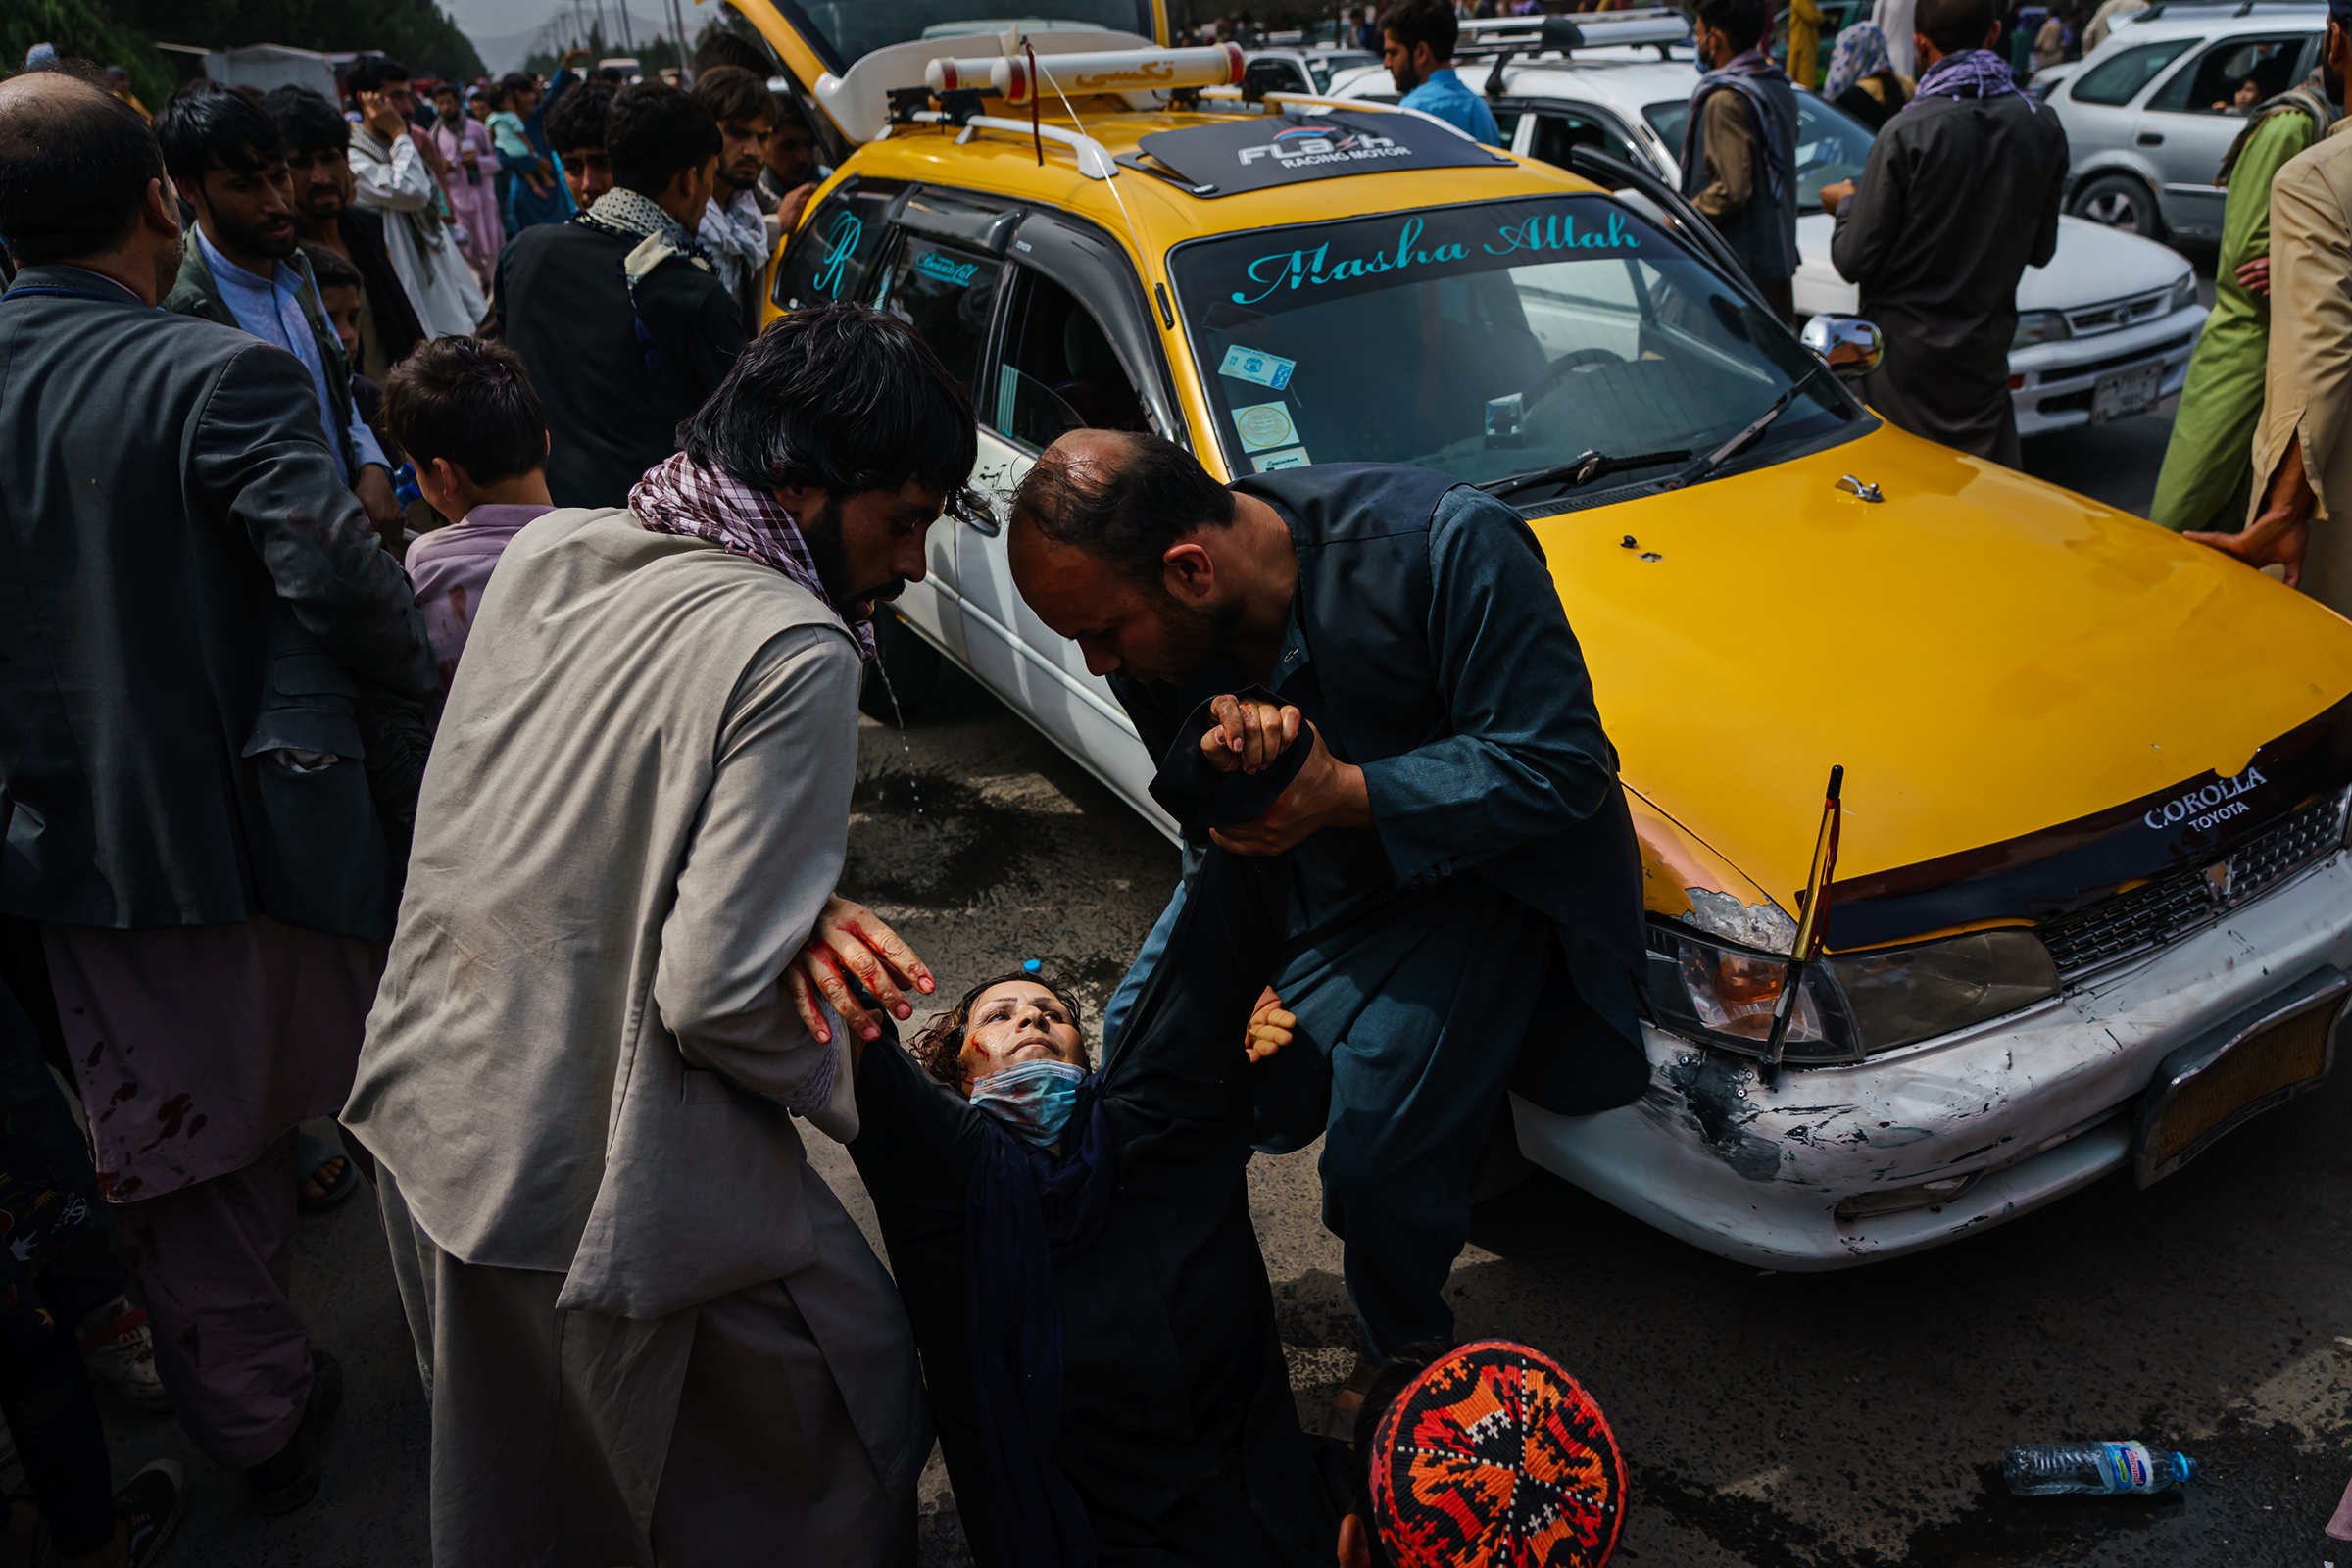 Men try to help a wounded woman and her child, who was also injured, after Taliban fighters use gunfire, whips, sticks and sharp objects to maintain control over a crowd of thousands waiting outside the airport in Kabul on Aug. 17.